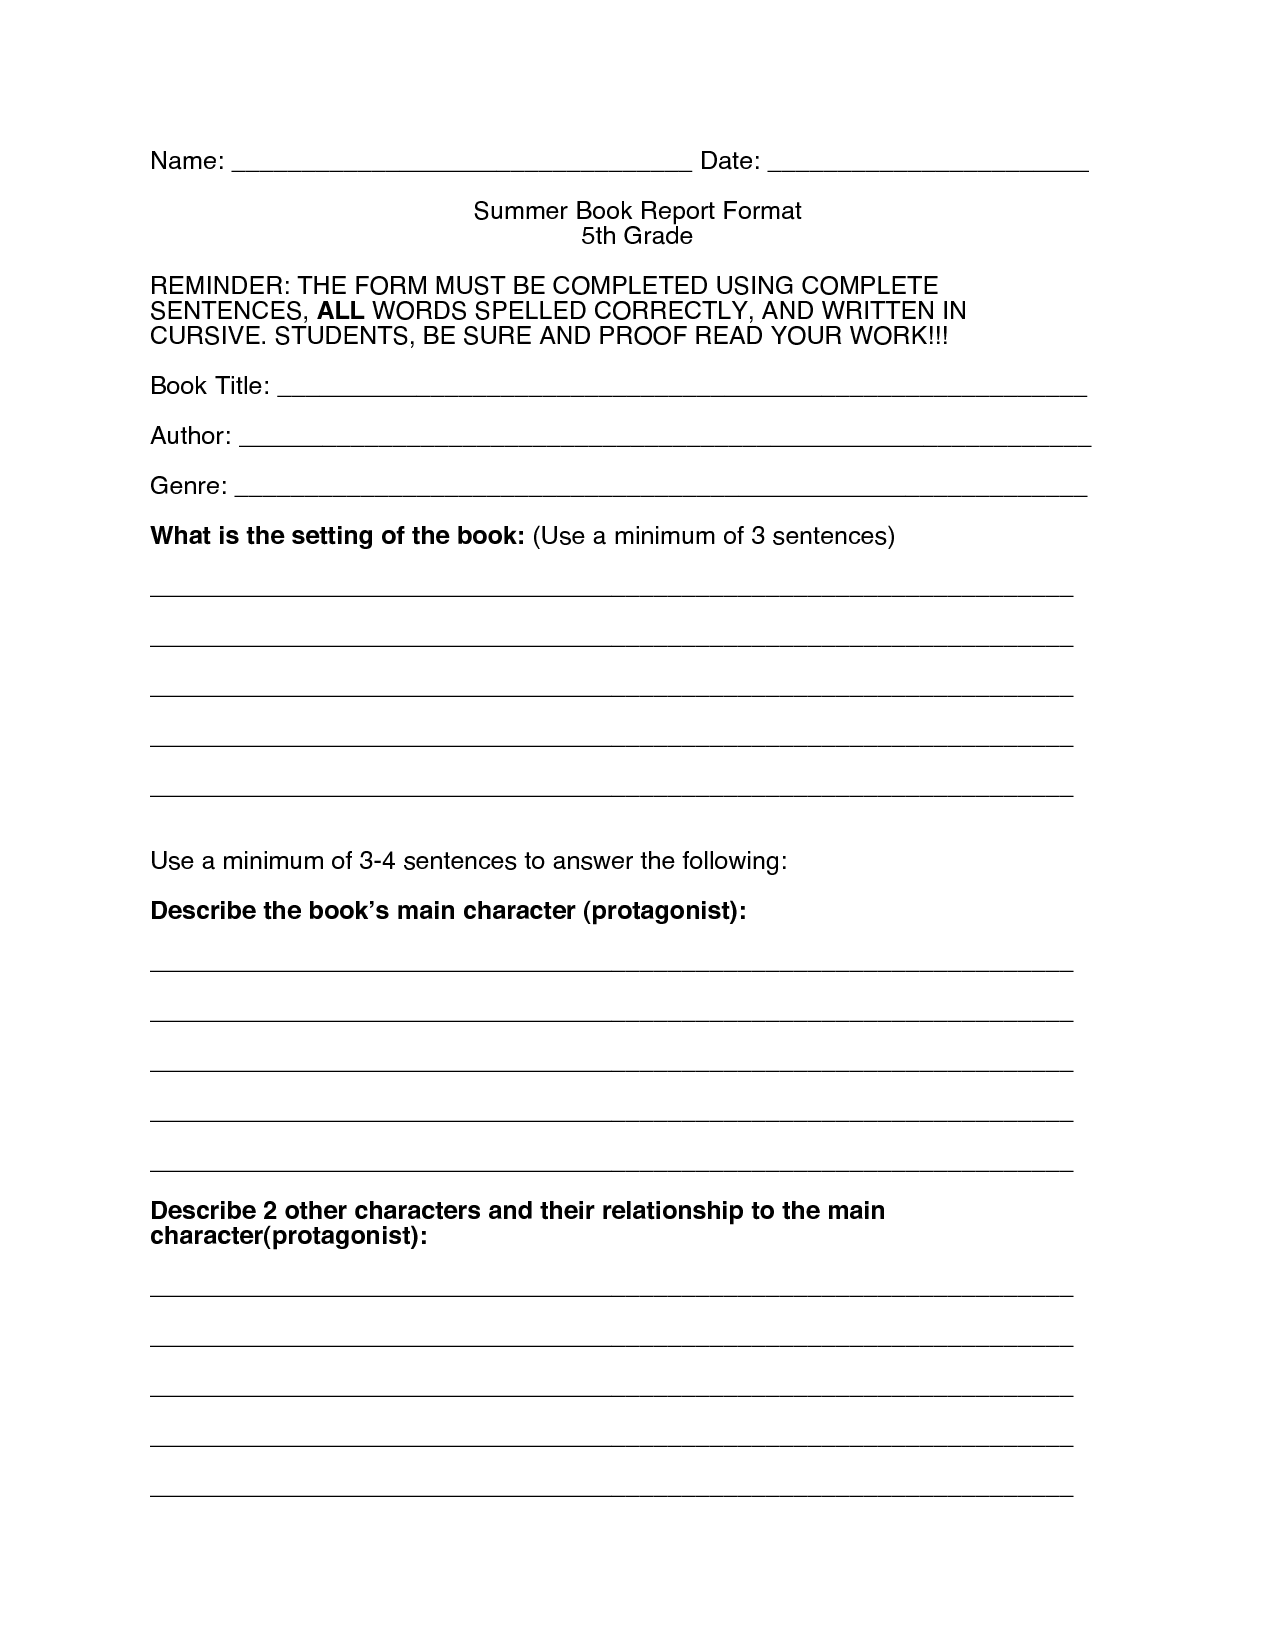 Book Report Form and 5th Grade Book Report Worksheet Printable